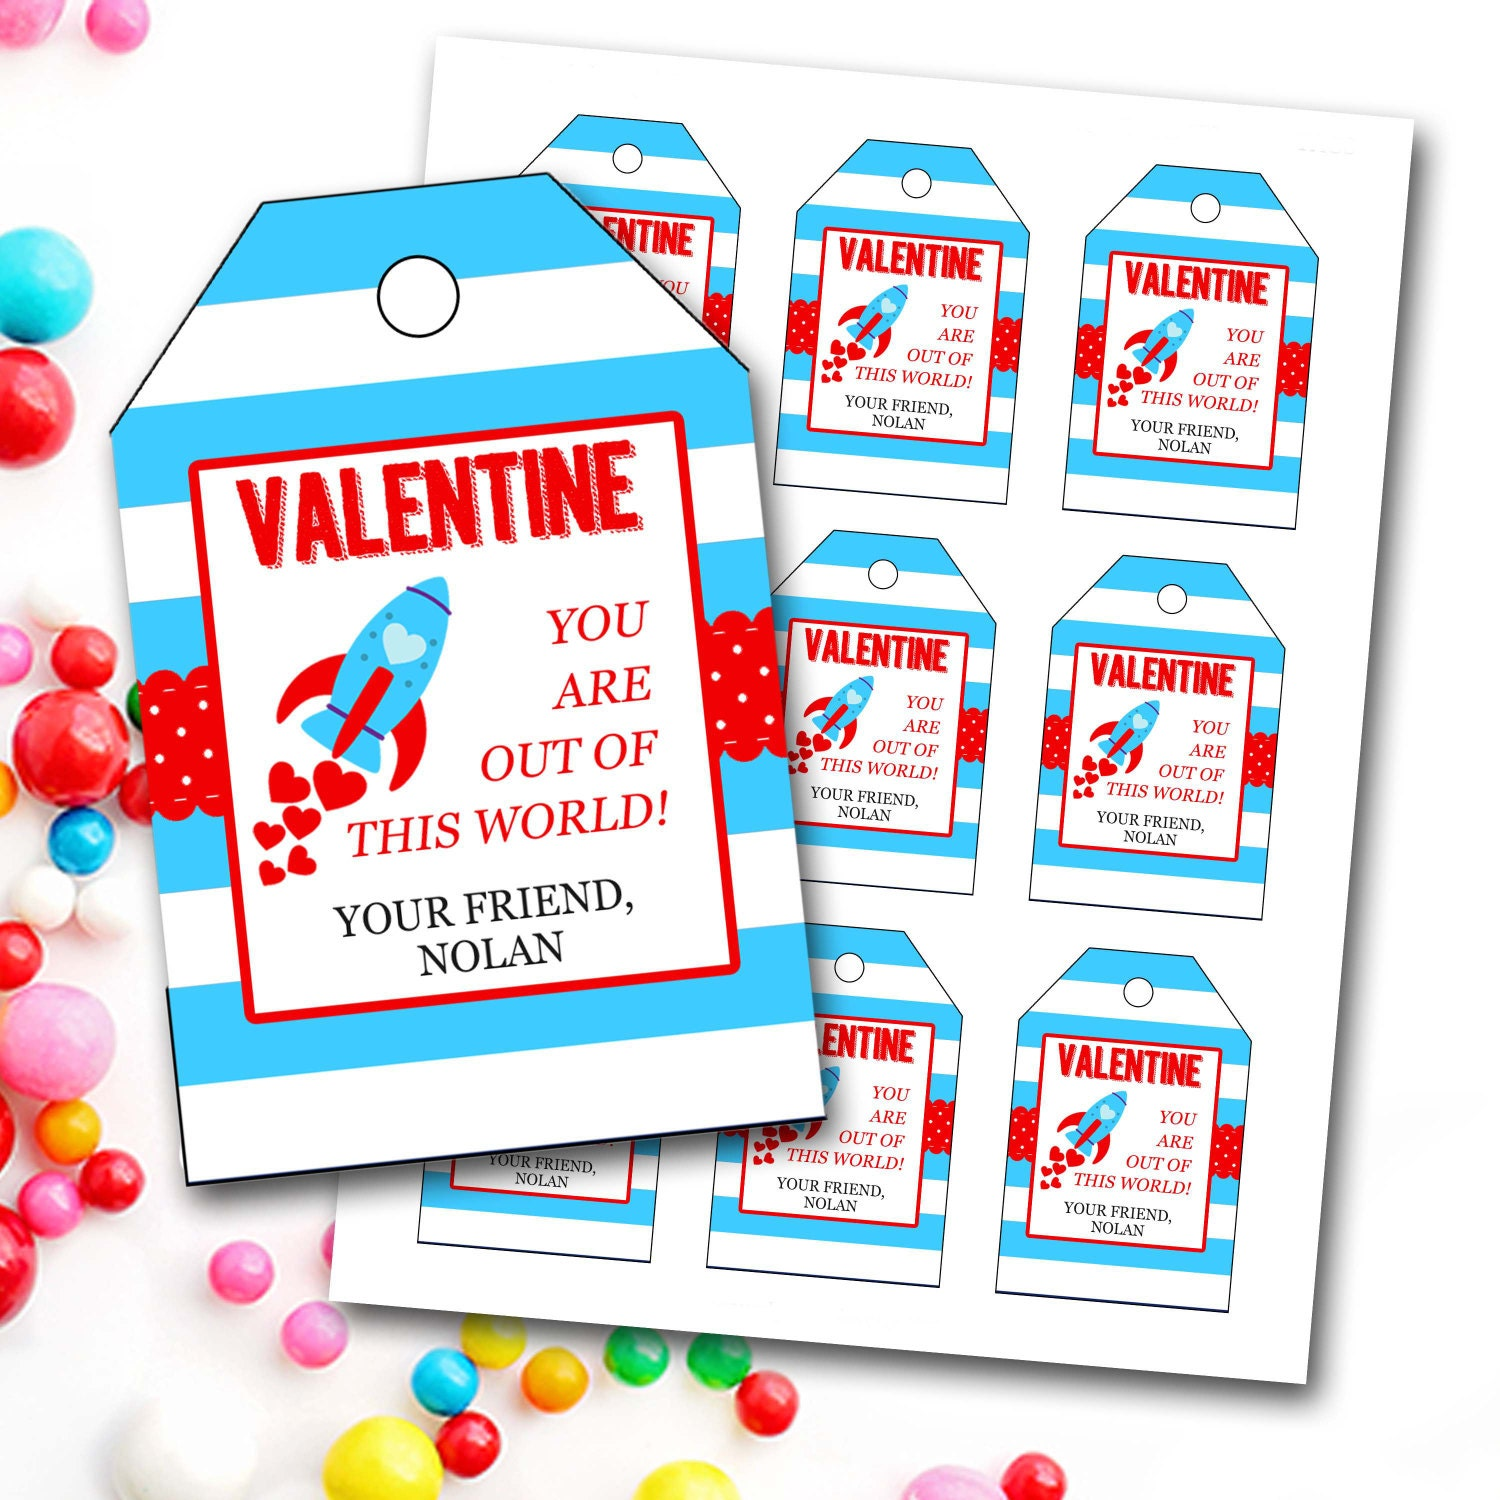 valentines day tag boy valentines day tag rocket valentines tag personalized valentines tag party favor tags diy printable - Boy Valentines